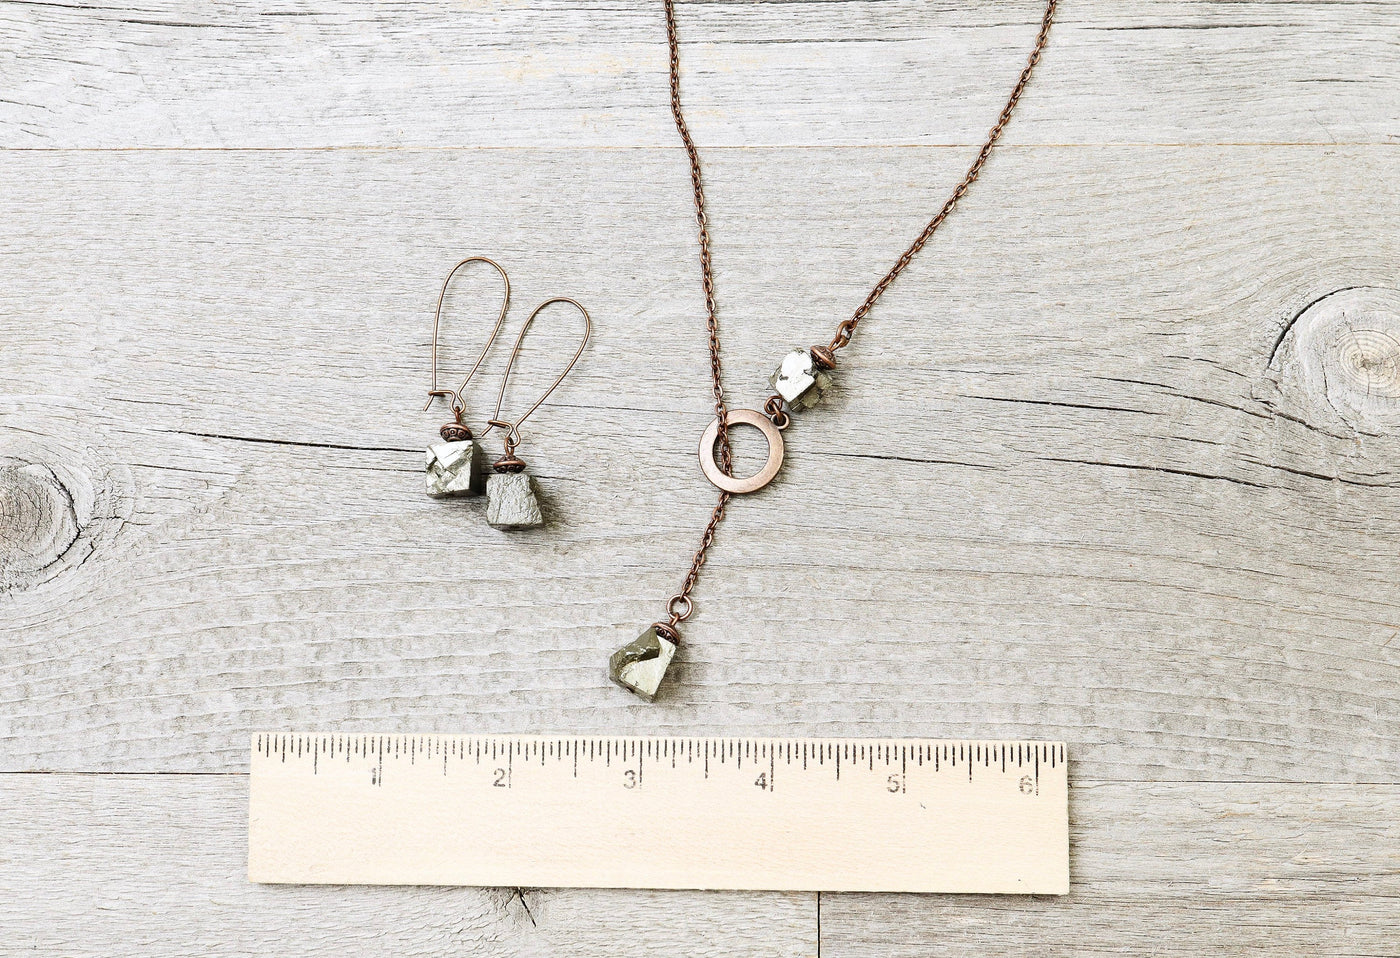 Pyrite Boho Necklace - Cute Lovely Raw Stone Valentine's Day Gift for Her Girlfriend Sister Daughter Elegant Gemstone Pendant Jewelry Set